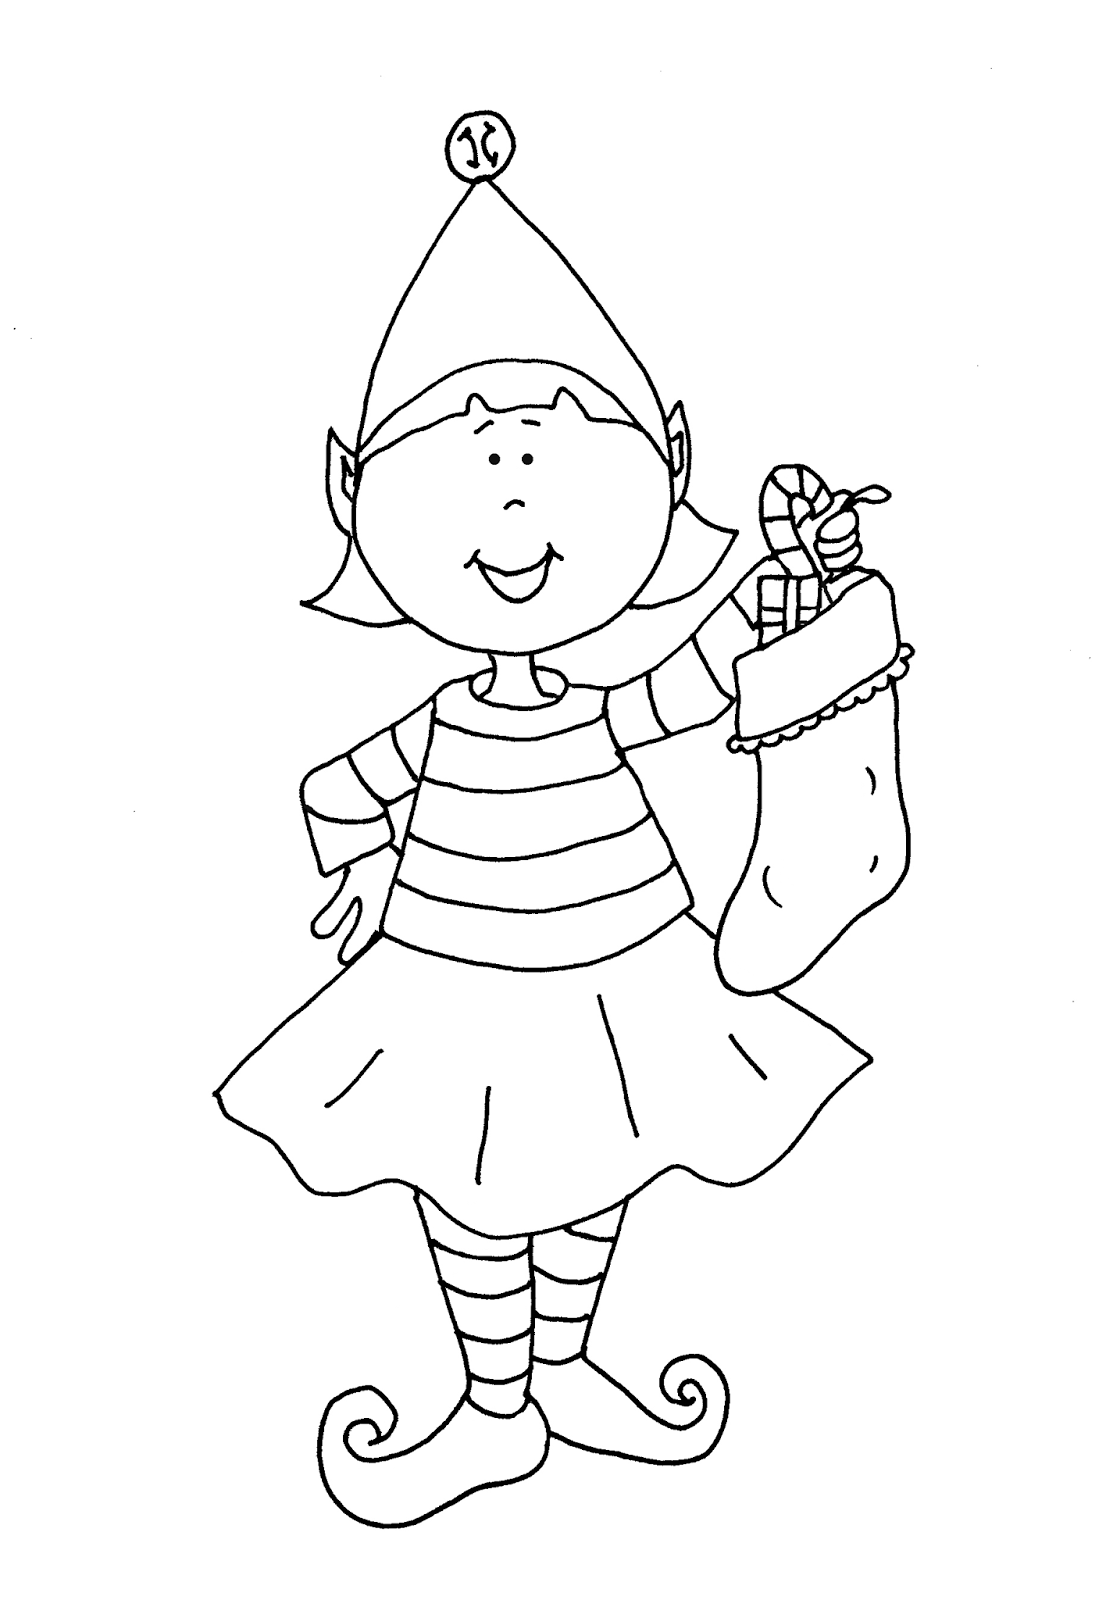 coloring pages elf | Free Dearie Dolls Digi Stamps: Elf Girl